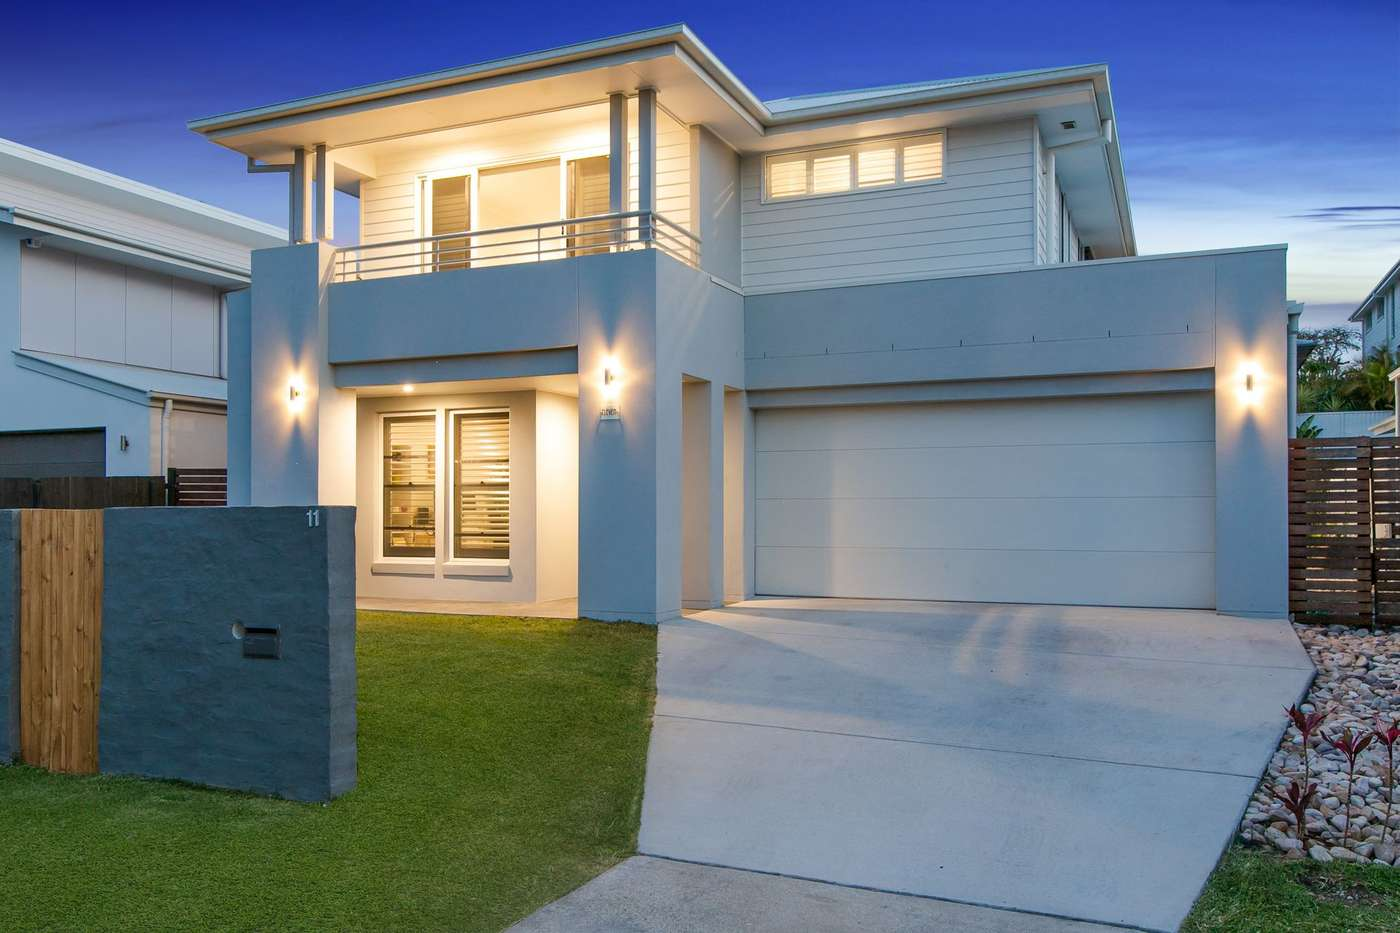 Main view of Homely house listing, 11 Seaside Close, Thorneside, QLD 4158